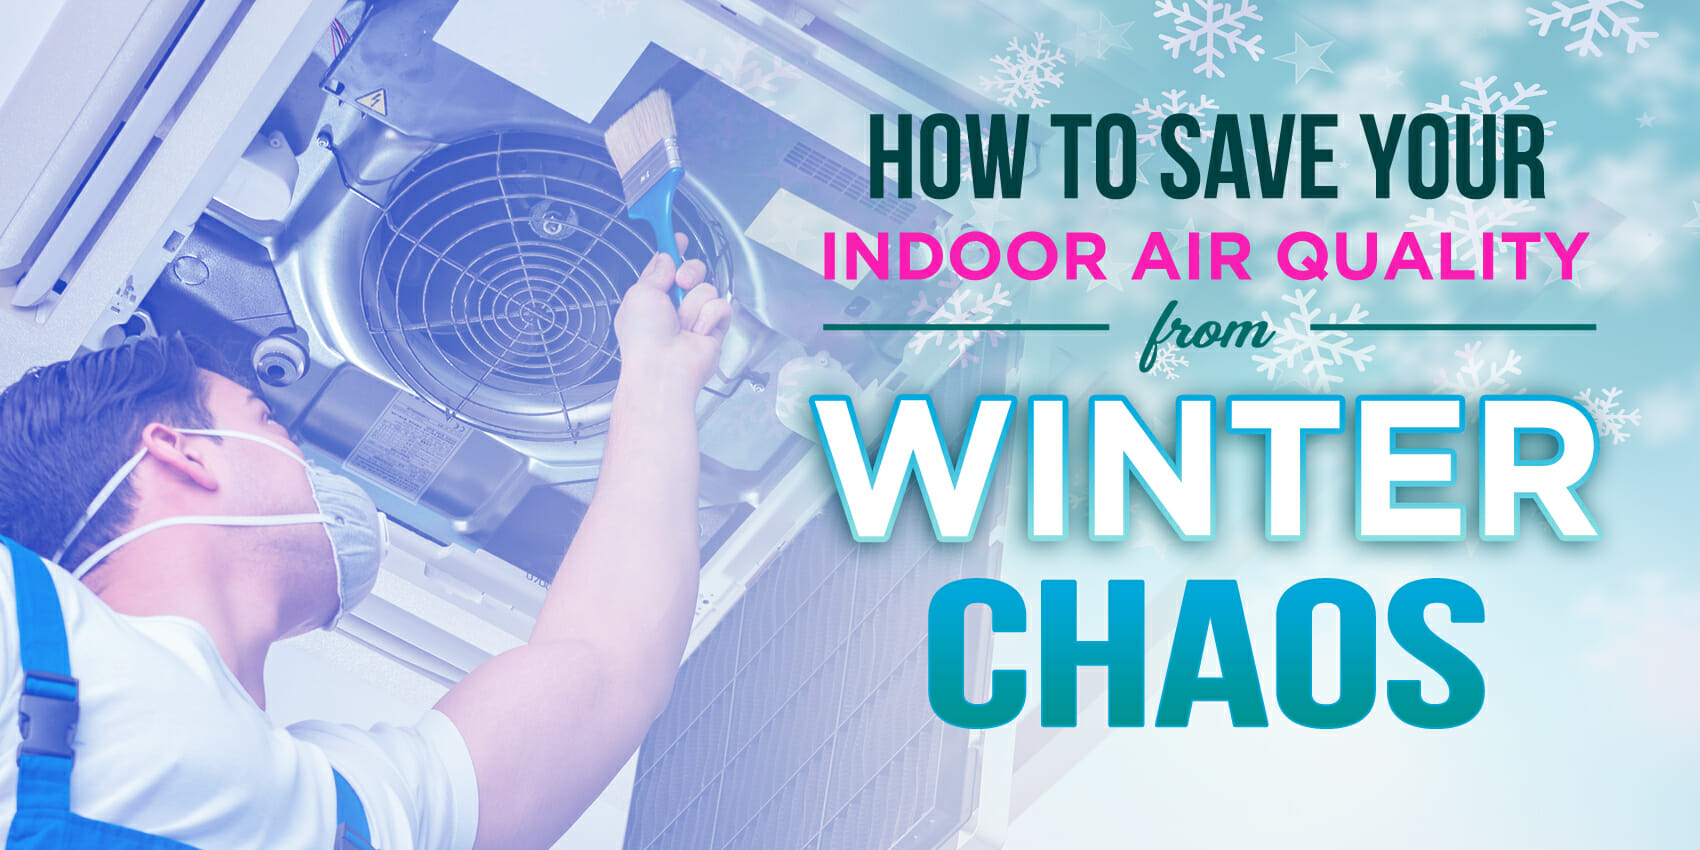 How To Save Your Indoor Air Quality From Winter Chaos